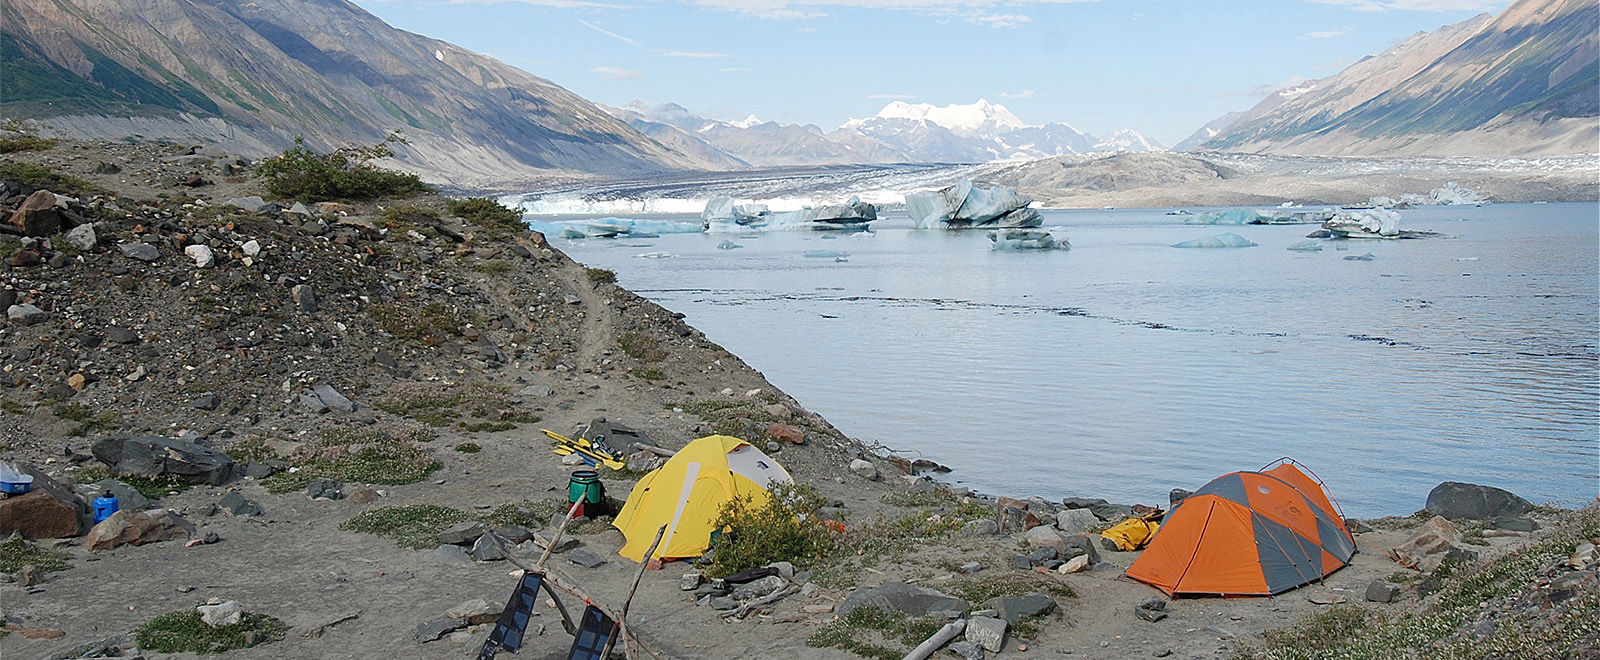 glacier view camp  serenaded by calving bergs